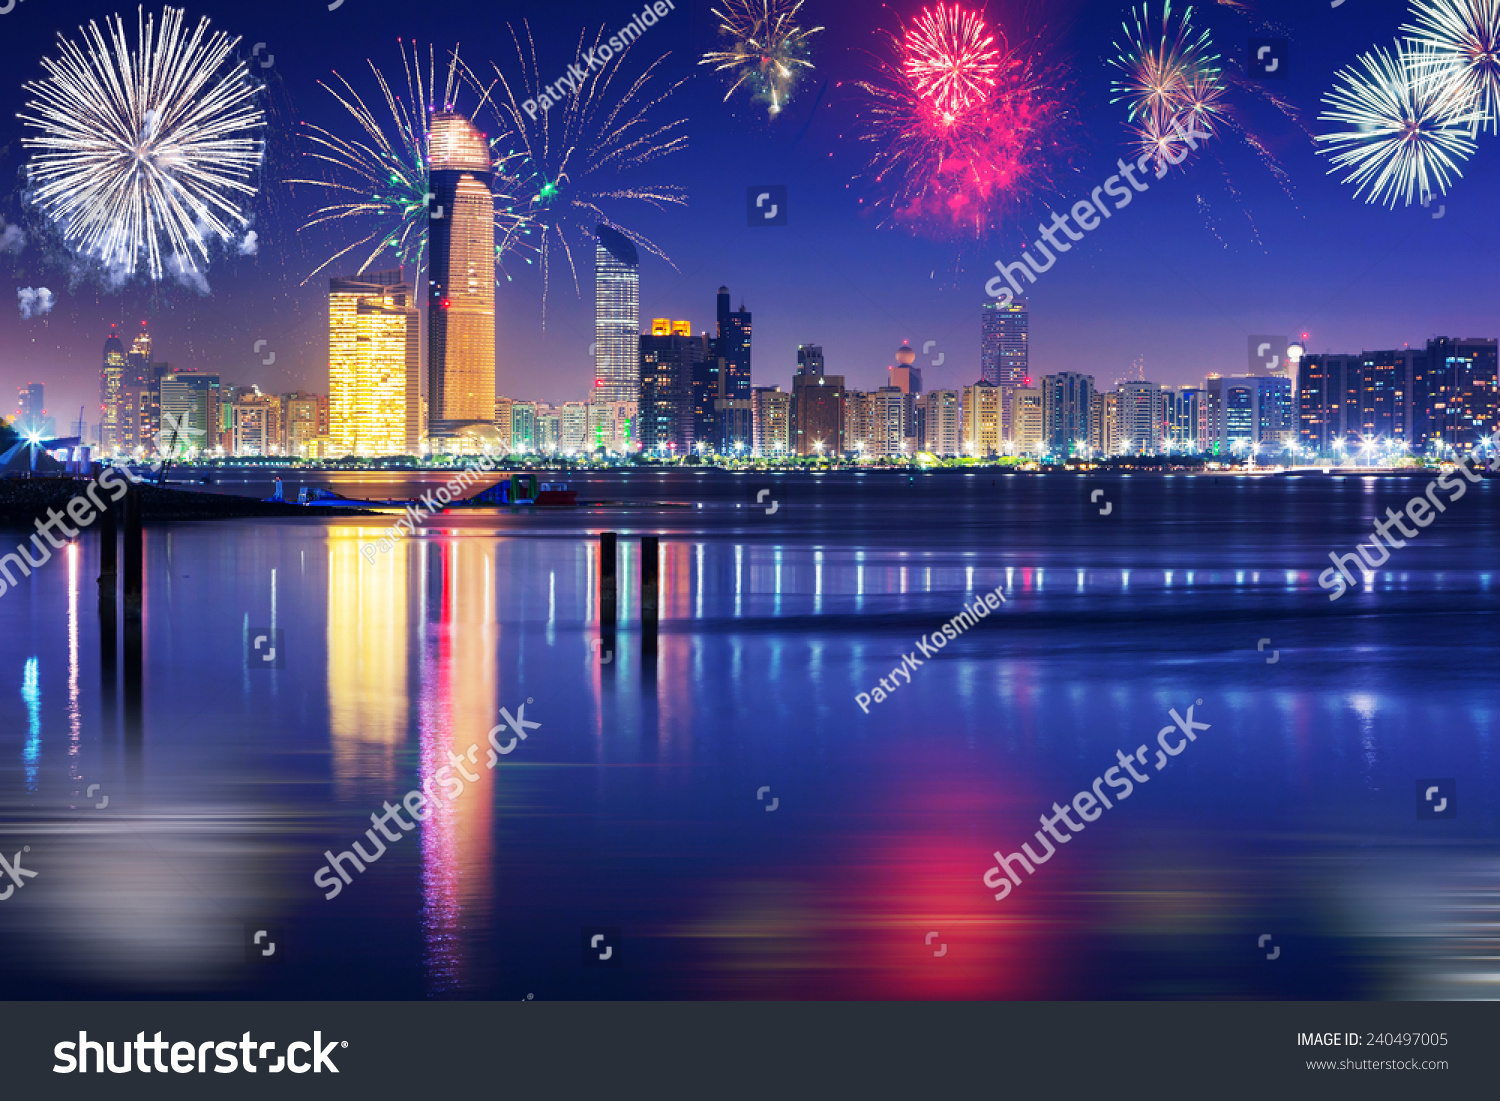 New Year Fireworks Display In Abu Dhabi, Uae Stock Photo 240497005 : Shutterstock